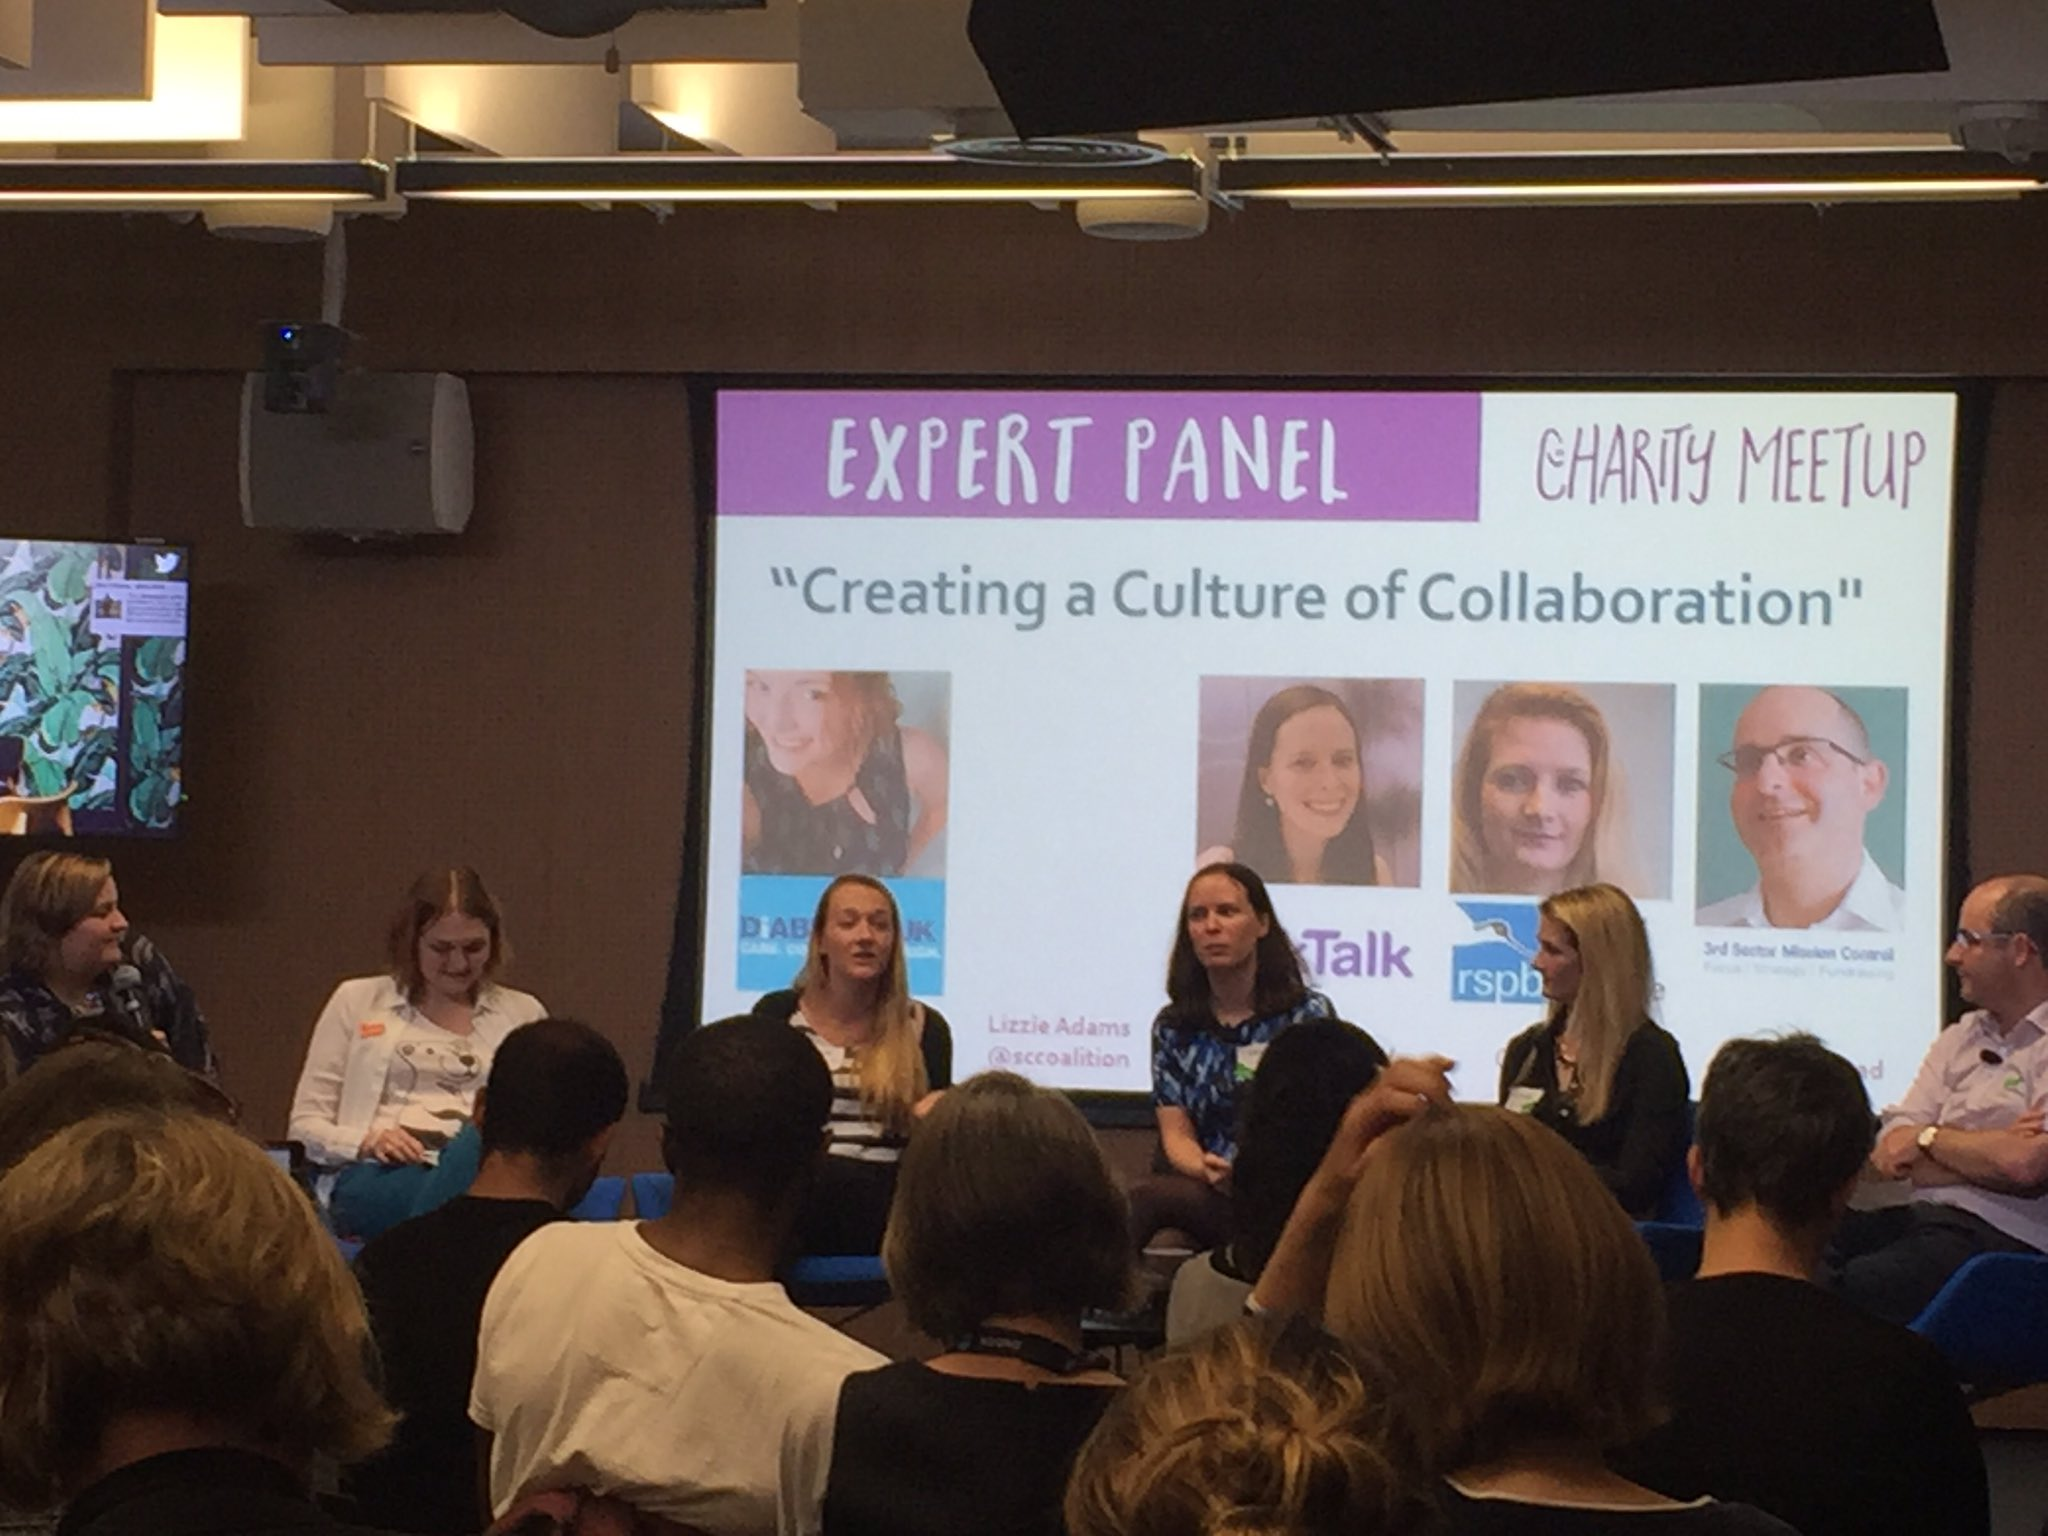 Had such a great night discussing #collaboration at #charitymeetup Thank you @goreckidawn and all the speakers! #mondaymotivation https://t.co/SrJoLqur5b